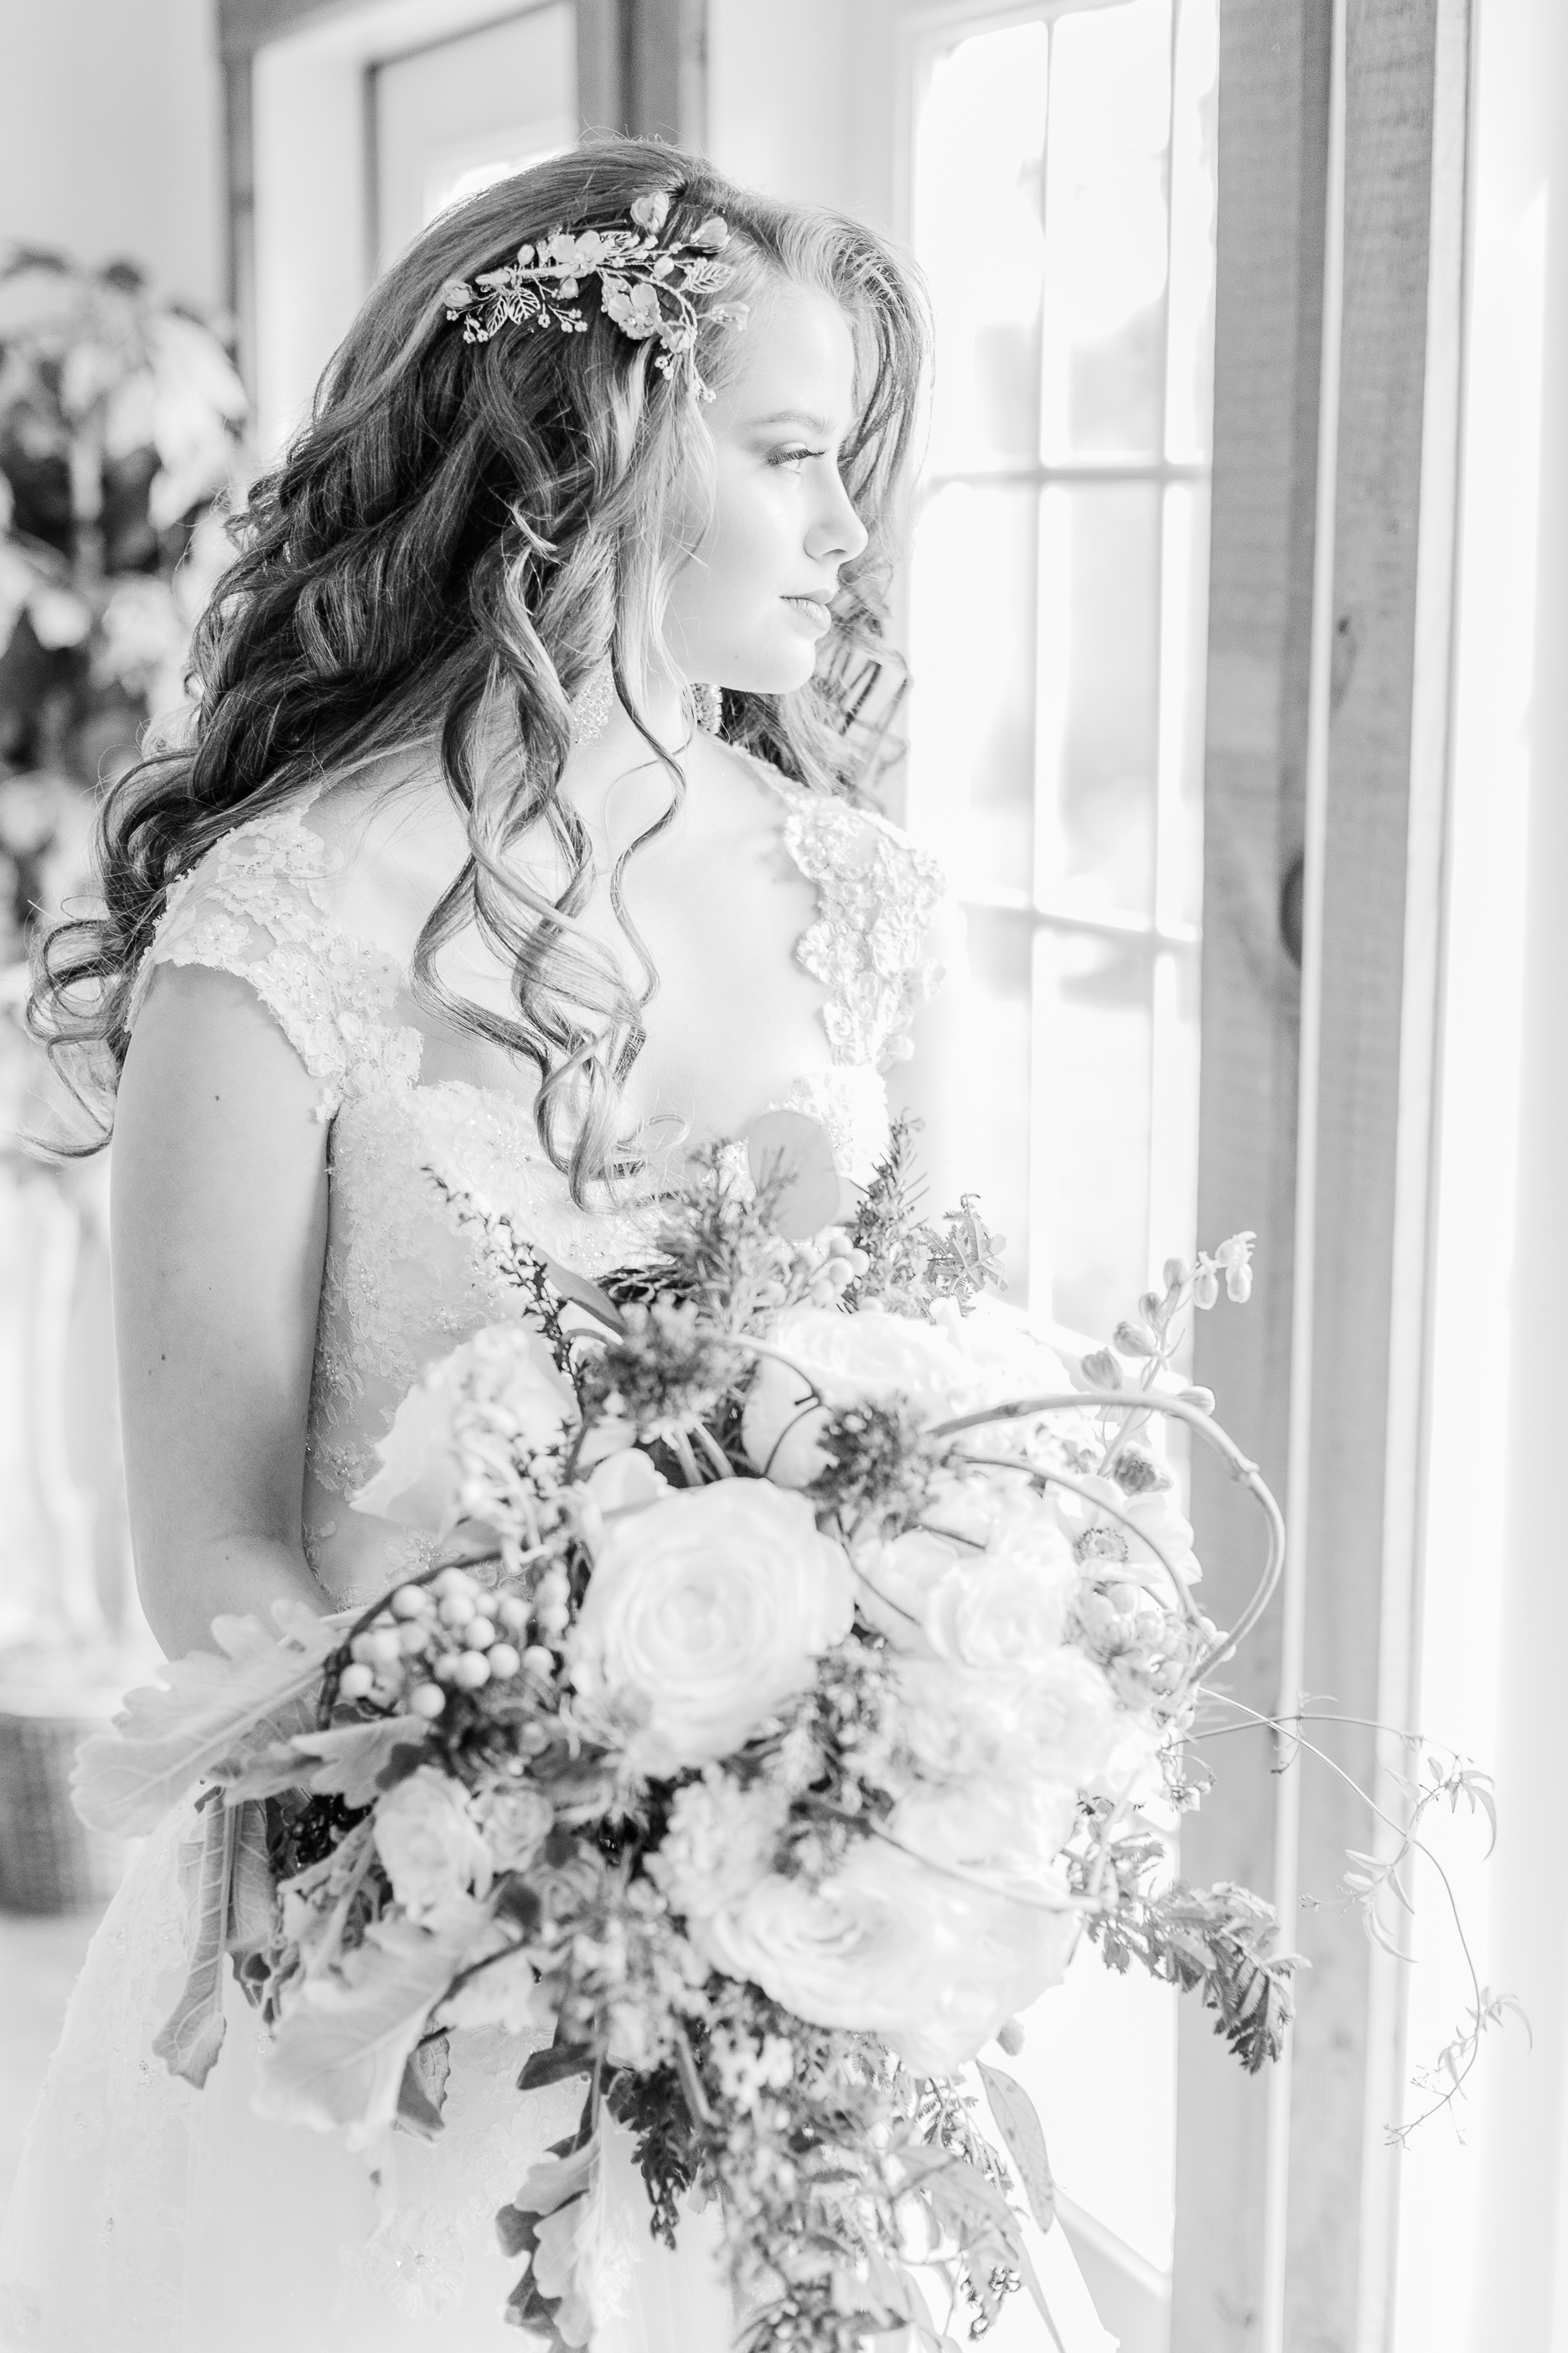 Dusty Blue Winter Wedding at Barn and Hill Reading PA Lehigh Valley wedding and lifestyle photographer Lytle Photo Co (59 of 218).jpg